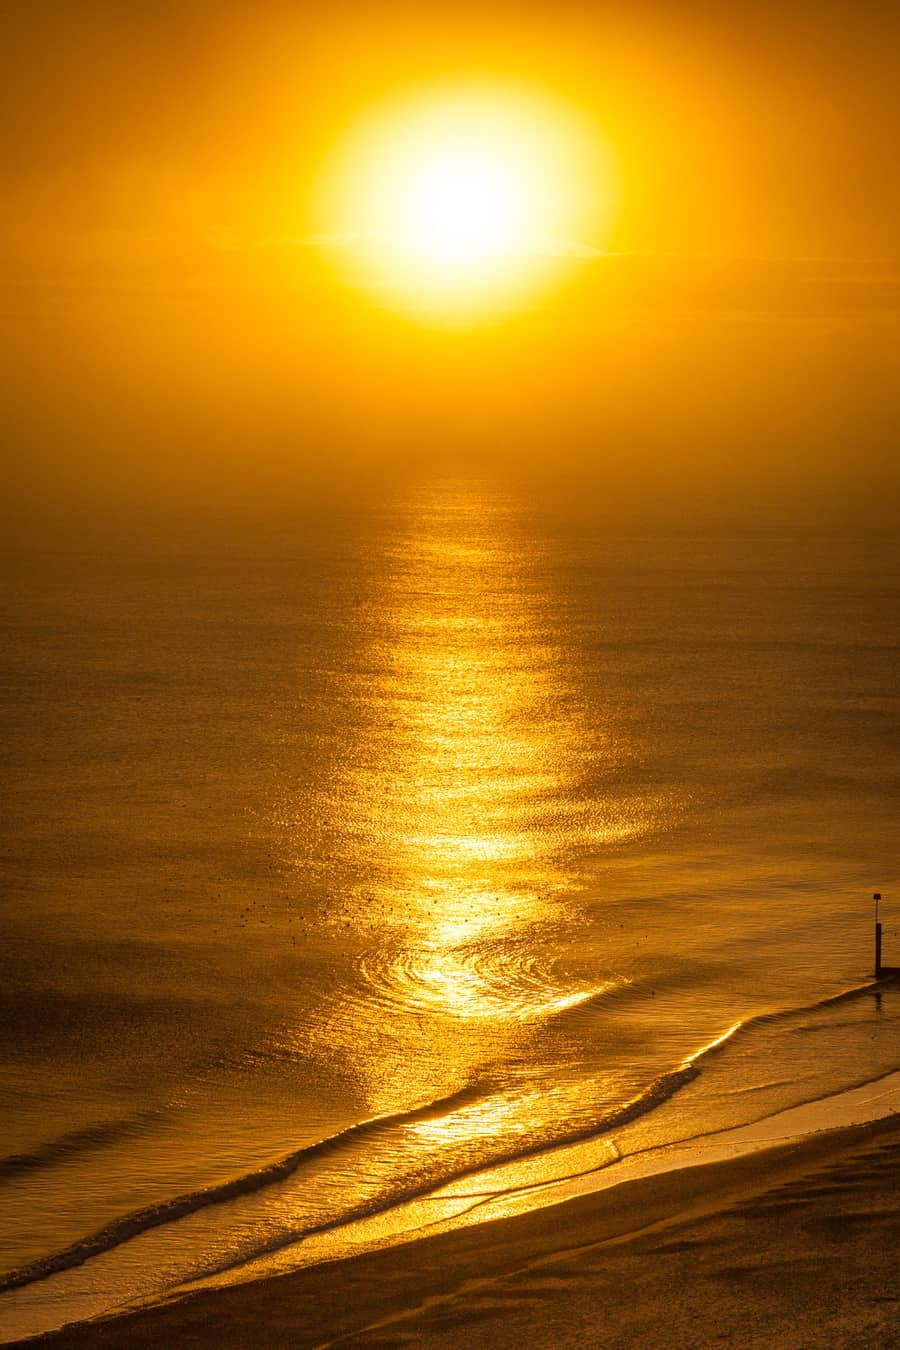 A picture of the sun, sea and beach all illuminated by a lovely bright warm vibrant golden sun